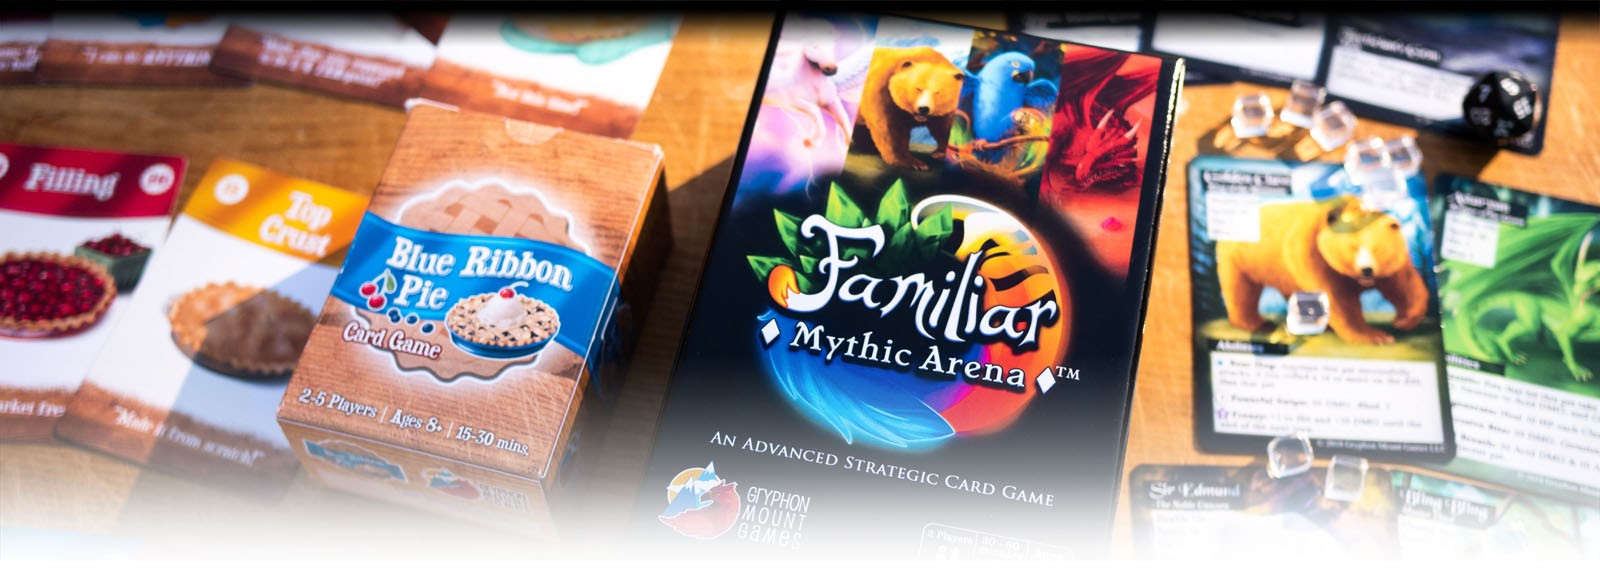 Familiar Mythic Arena and Blue Ribbon Pie card games